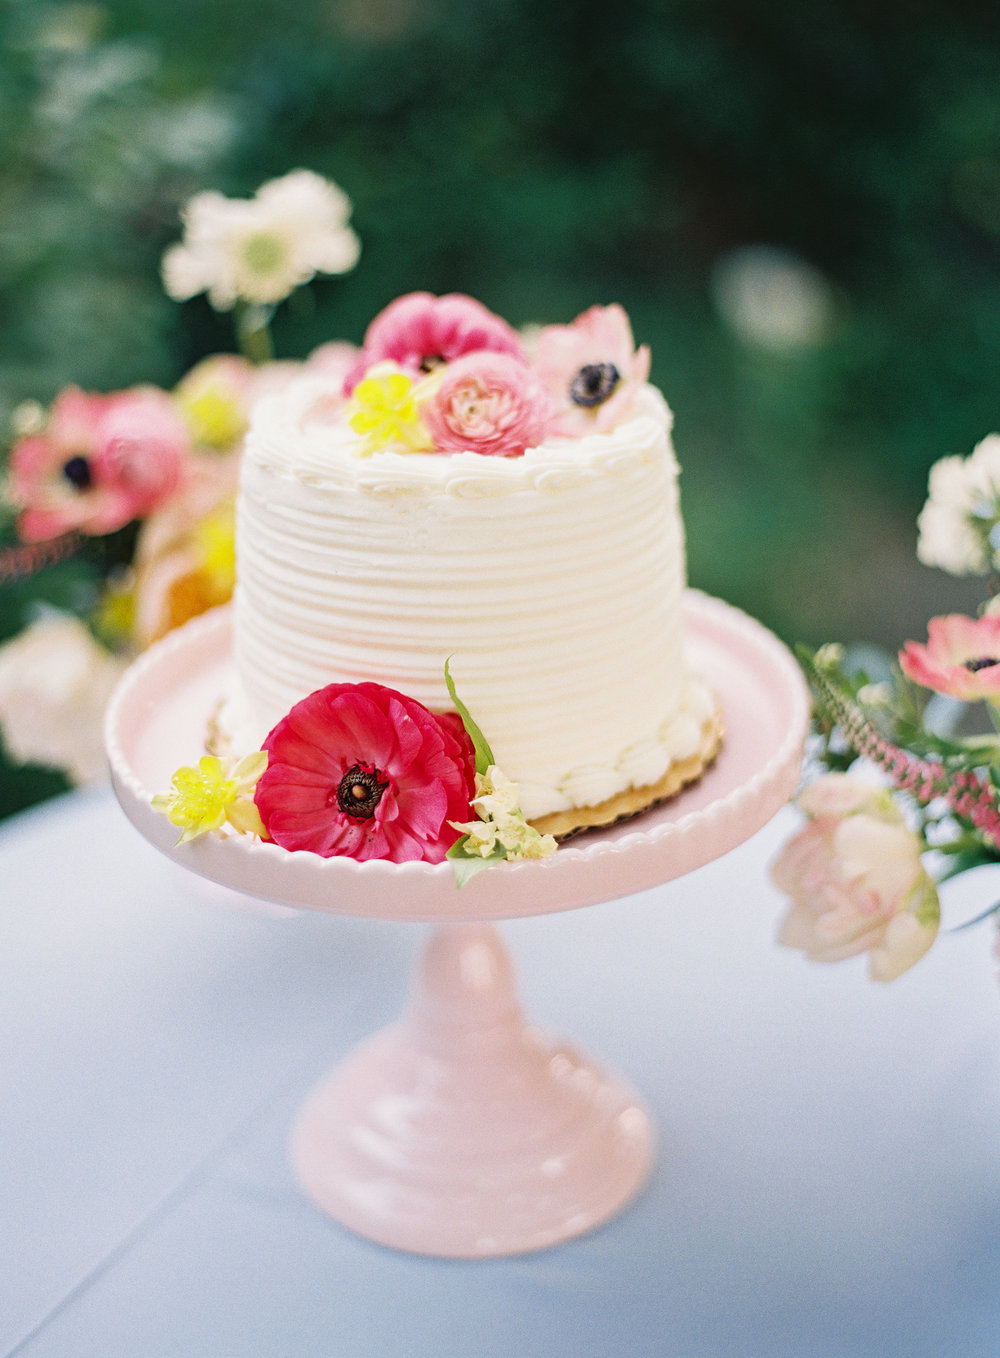 NathalieCheng_Monet_Styled_Shoot_Dessert_Table_Details_006.jpg